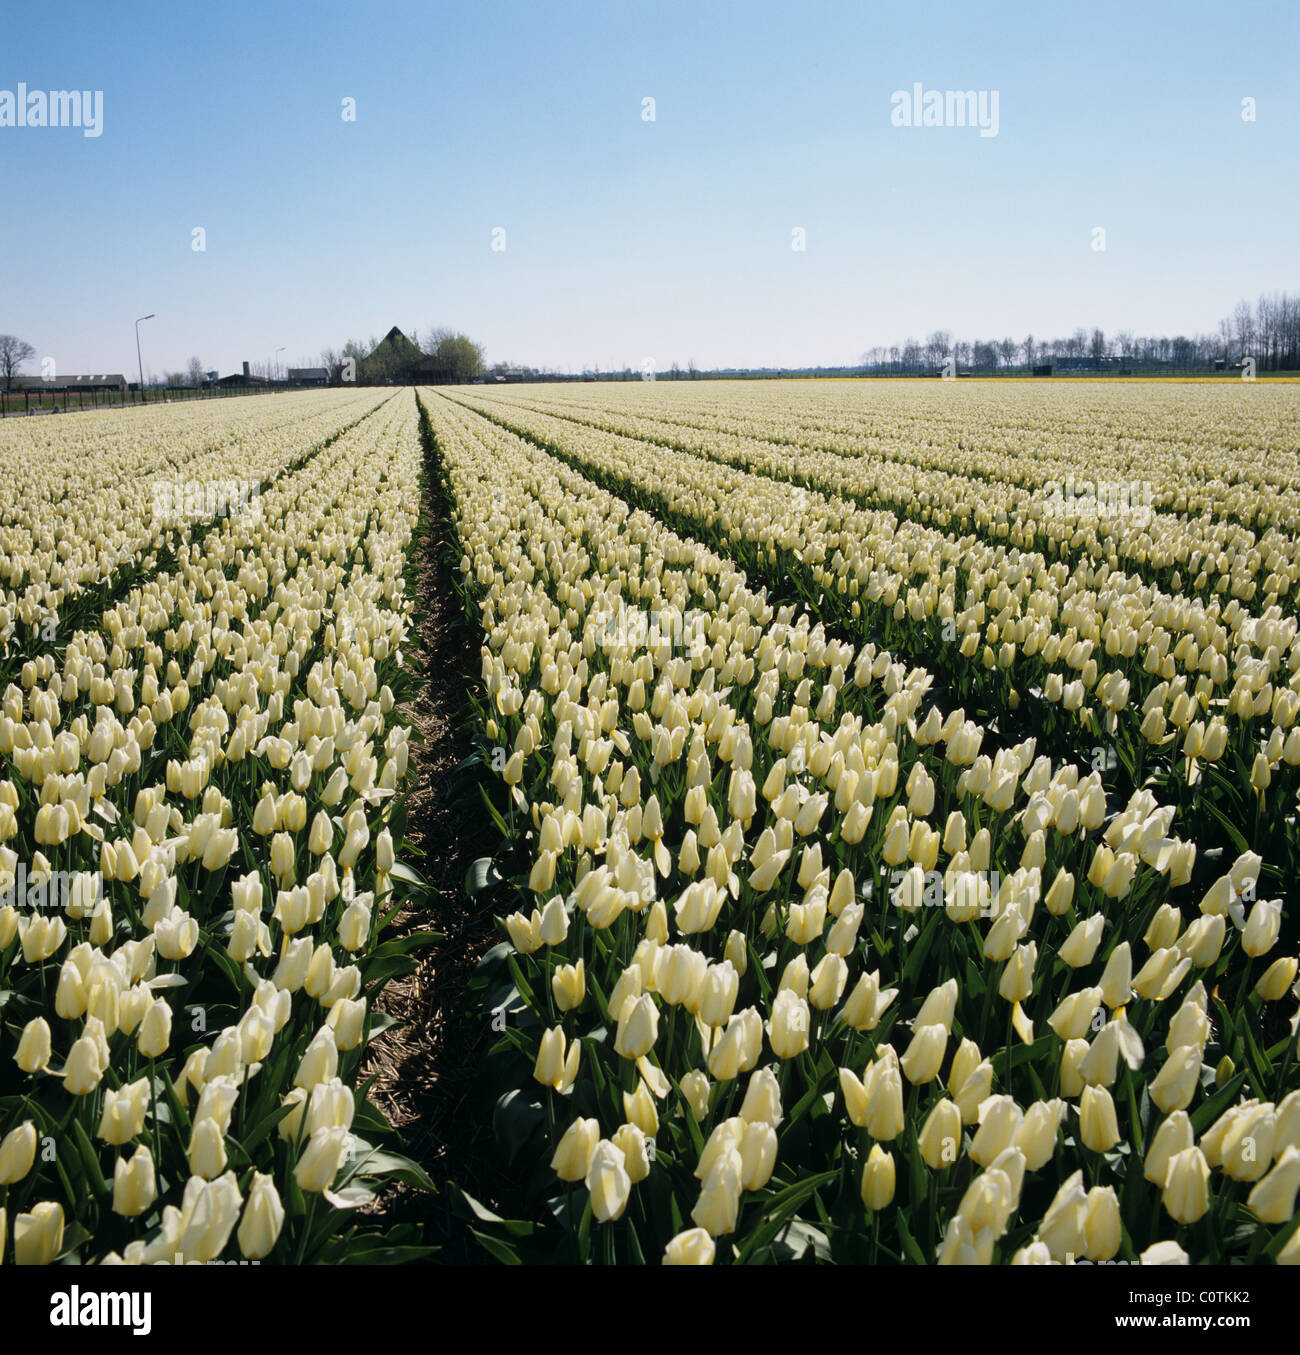 White tulips in a Dutch bulbfield in spring, Holland - Stock Image